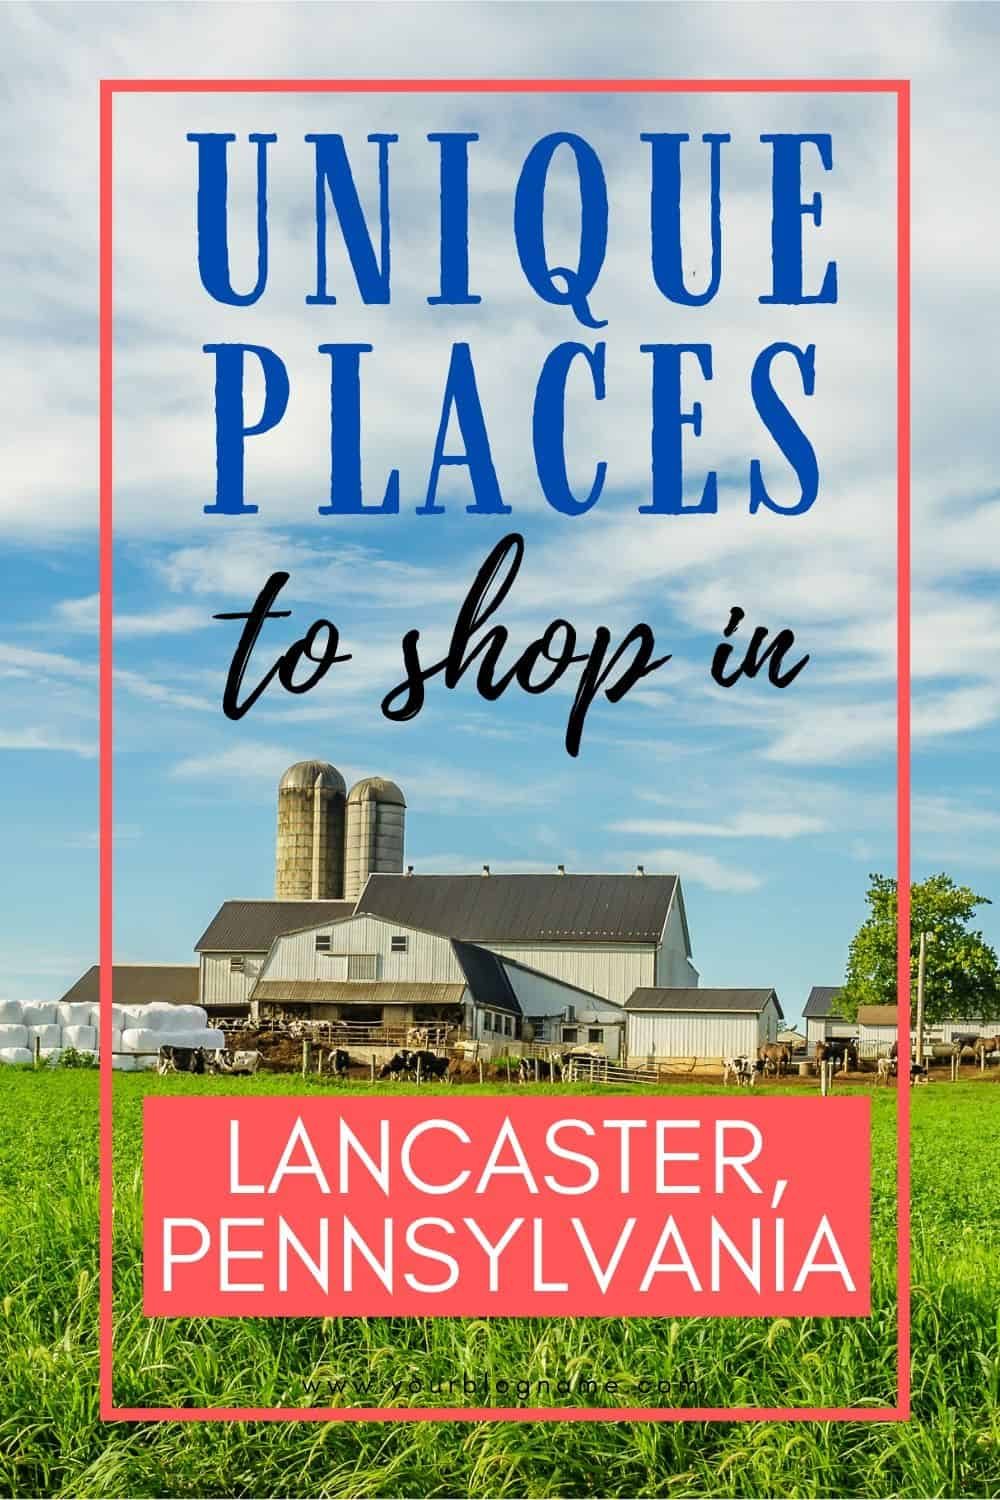 From shopping to sightseeing, there is so much to do in Lancaster, PA. Here are my favorite Unique Places To Shop In Lancaster County, PA.Lancaster, Pennsylvania is one of my favorite places to visit. Home to the Pennsylvania Dutch, or Amish, this county is peaceful, quint and full of lots of wonderful shopping experiences. #lancasterpa #familytravel #pennsylvania #pennsylvaniadutch